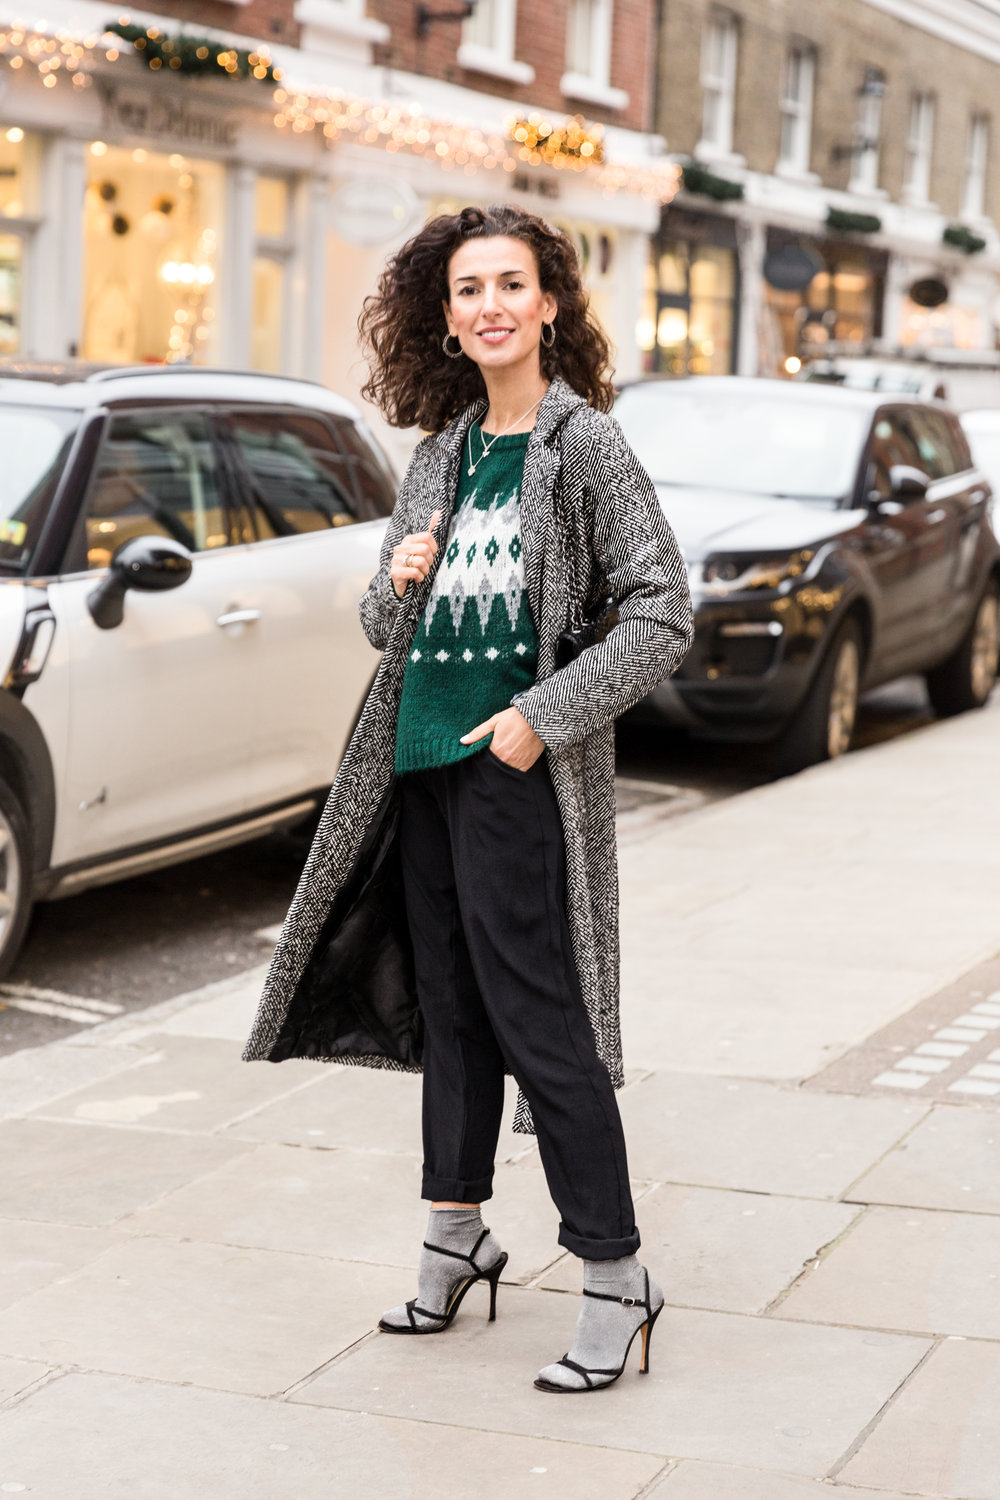 PERFECT XMAS SWEATERDECEMBER 11,2017 - In winter I always wear fuzzy and cosy sweaters, it´s great! and I just have to think about the bottom:pants or skirt?! and accessories! Hahaha It's really fast!...read more